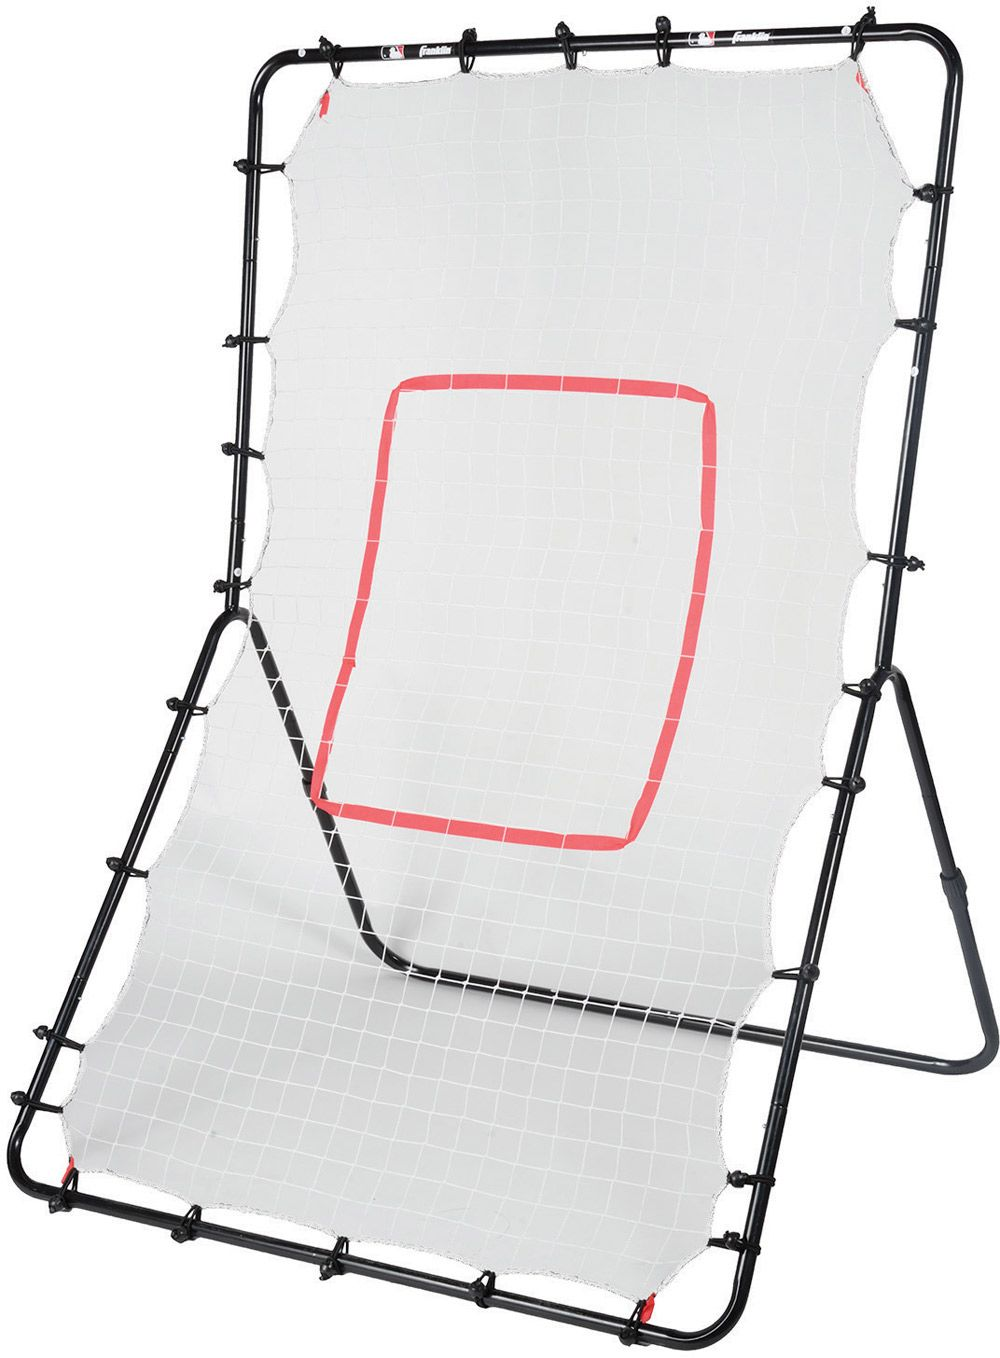 baseball nets screens u0026 rebounders u0027s sporting goods